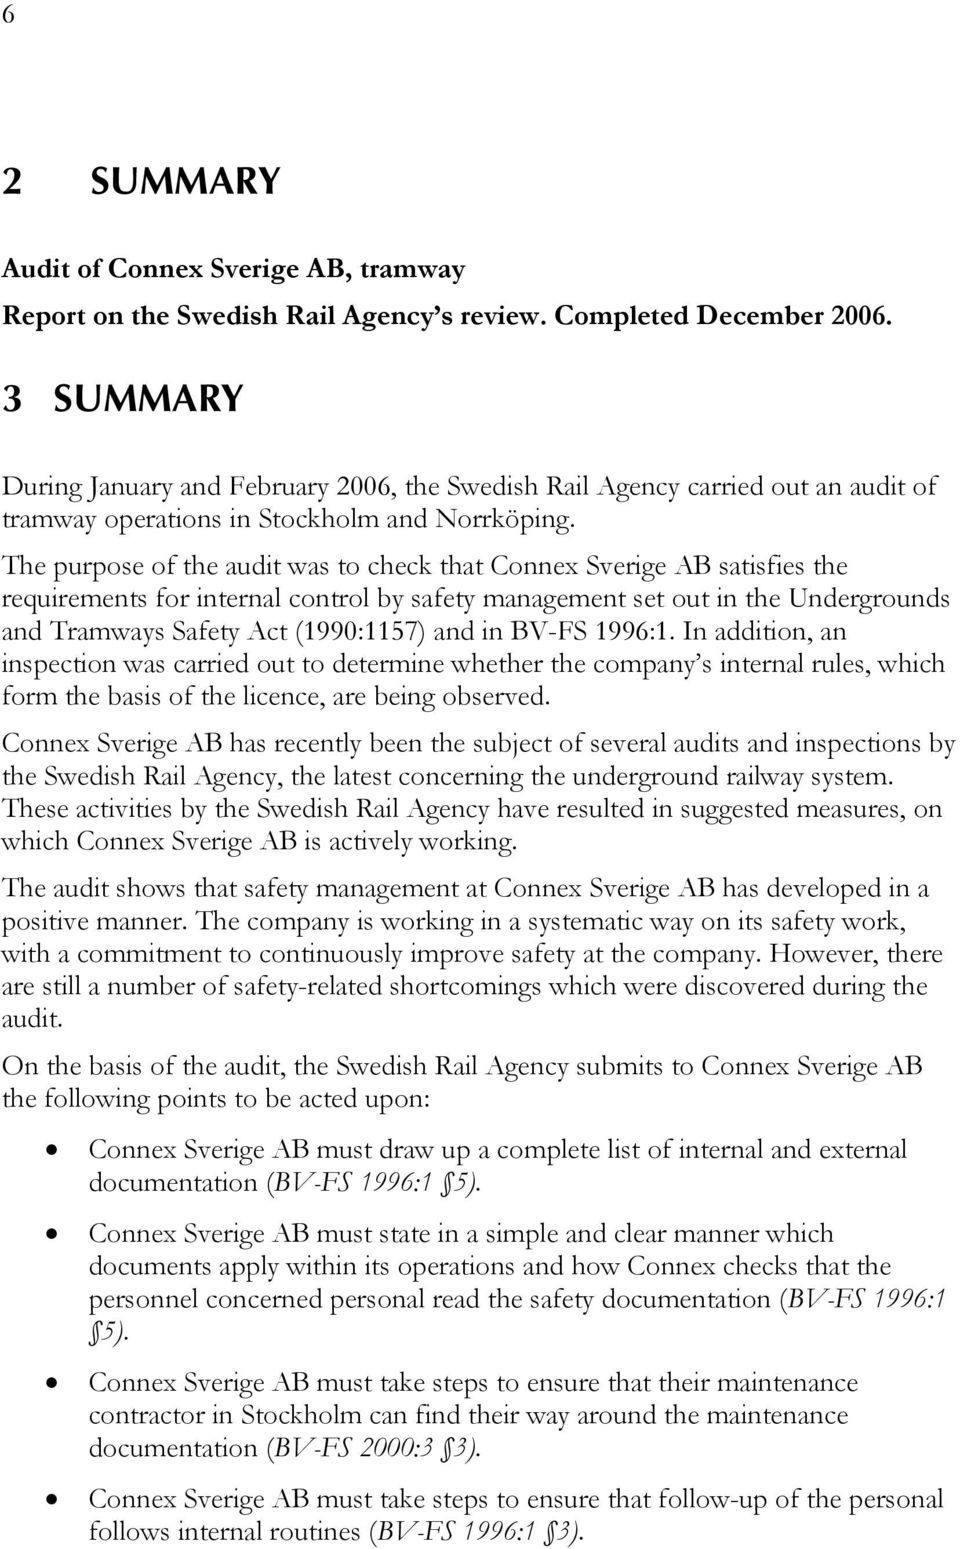 The purpose of the audit was to check that Connex Sverige AB satisfies the requirements for internal control by safety management set out in the Undergrounds and Tramways Safety Act (1990:1157) and